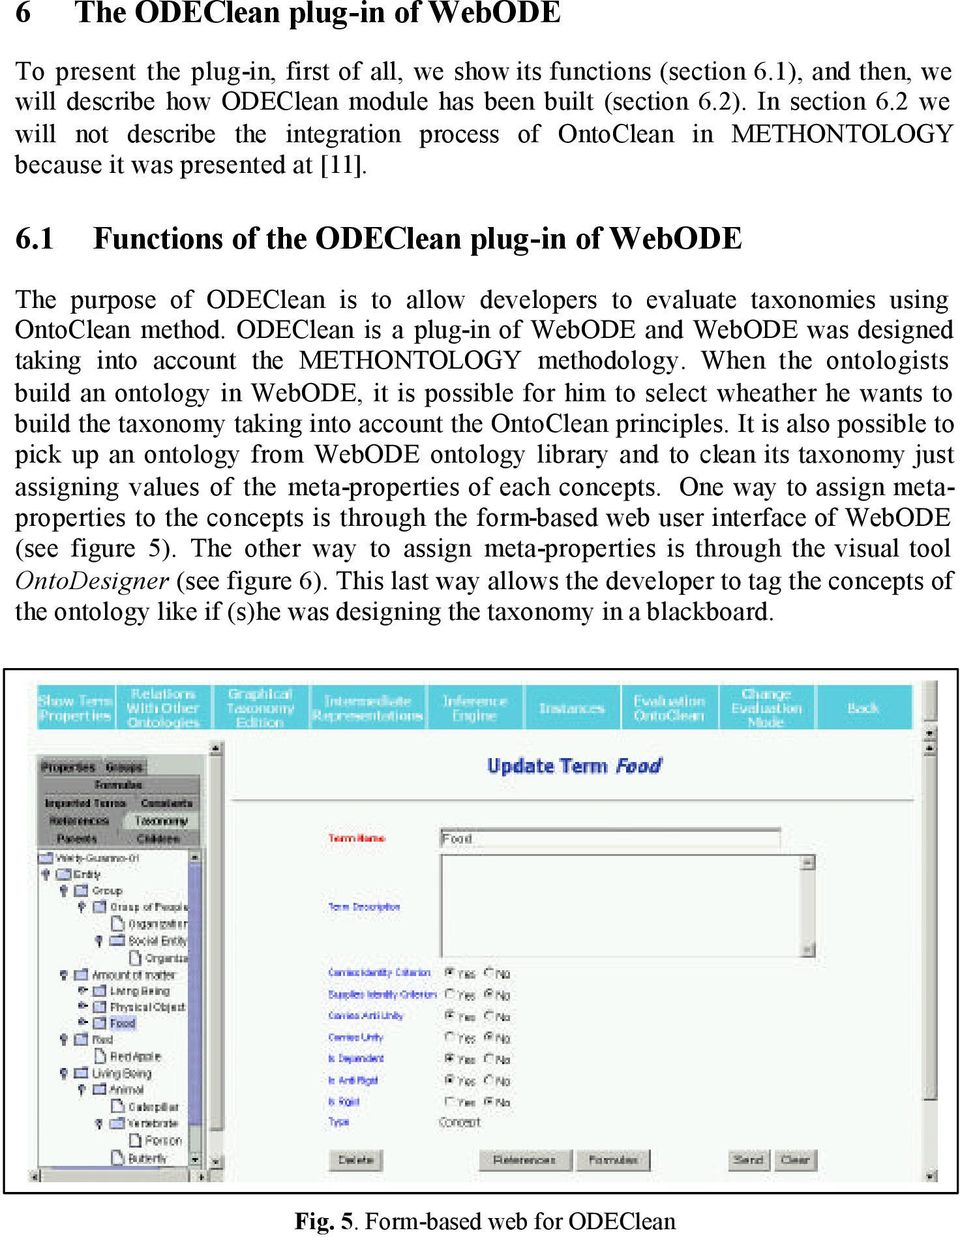 1 Functions of the ODEClean plug-in of WebODE The purpose of ODEClean is to allow developers to evaluate taxonomies using OntoClean method.